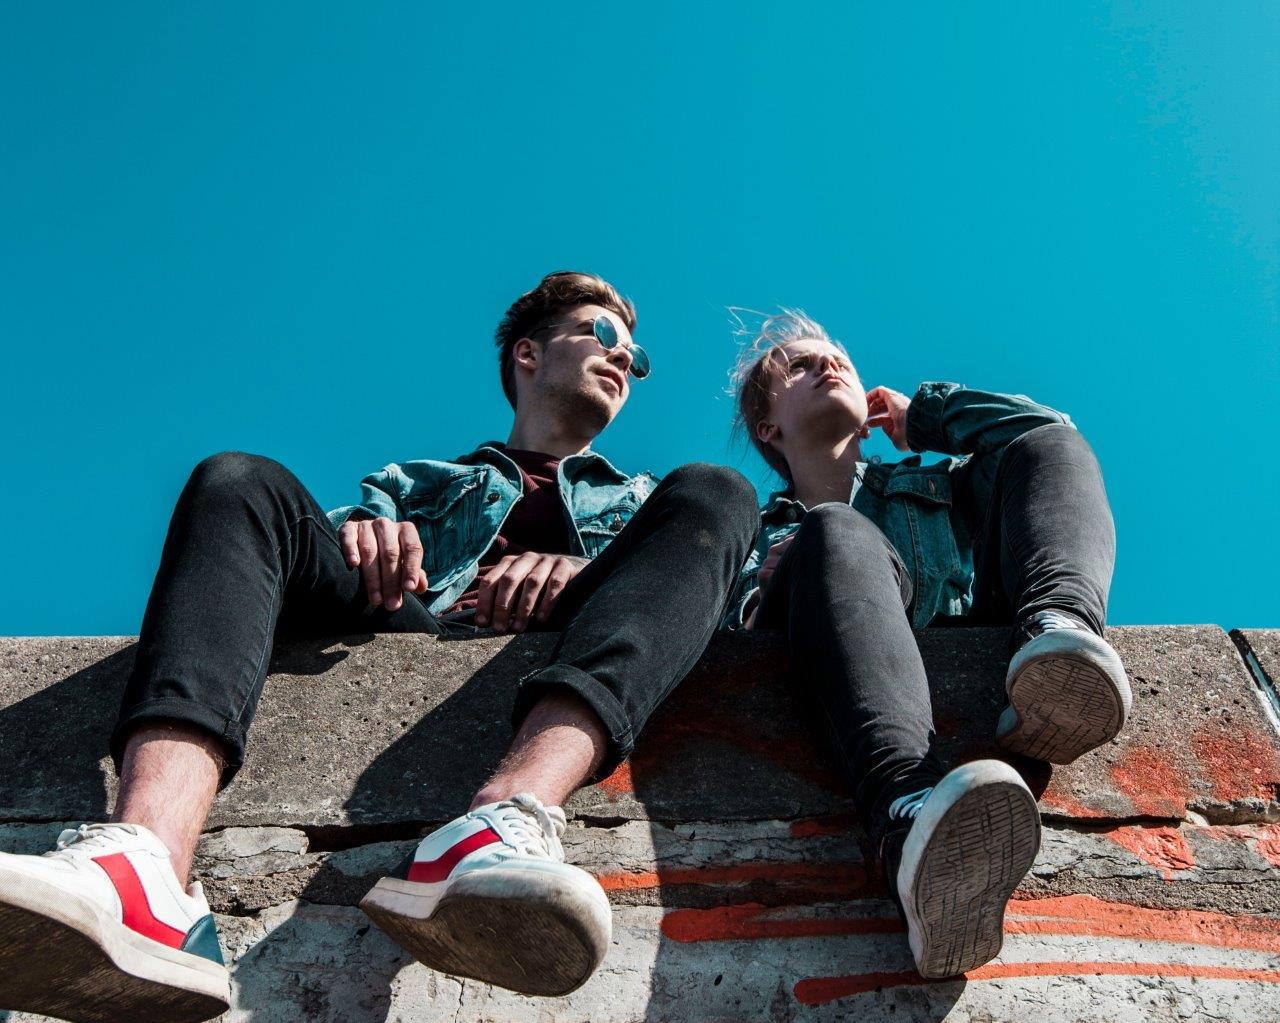 2 people sat on a wall with a blue sky behind them